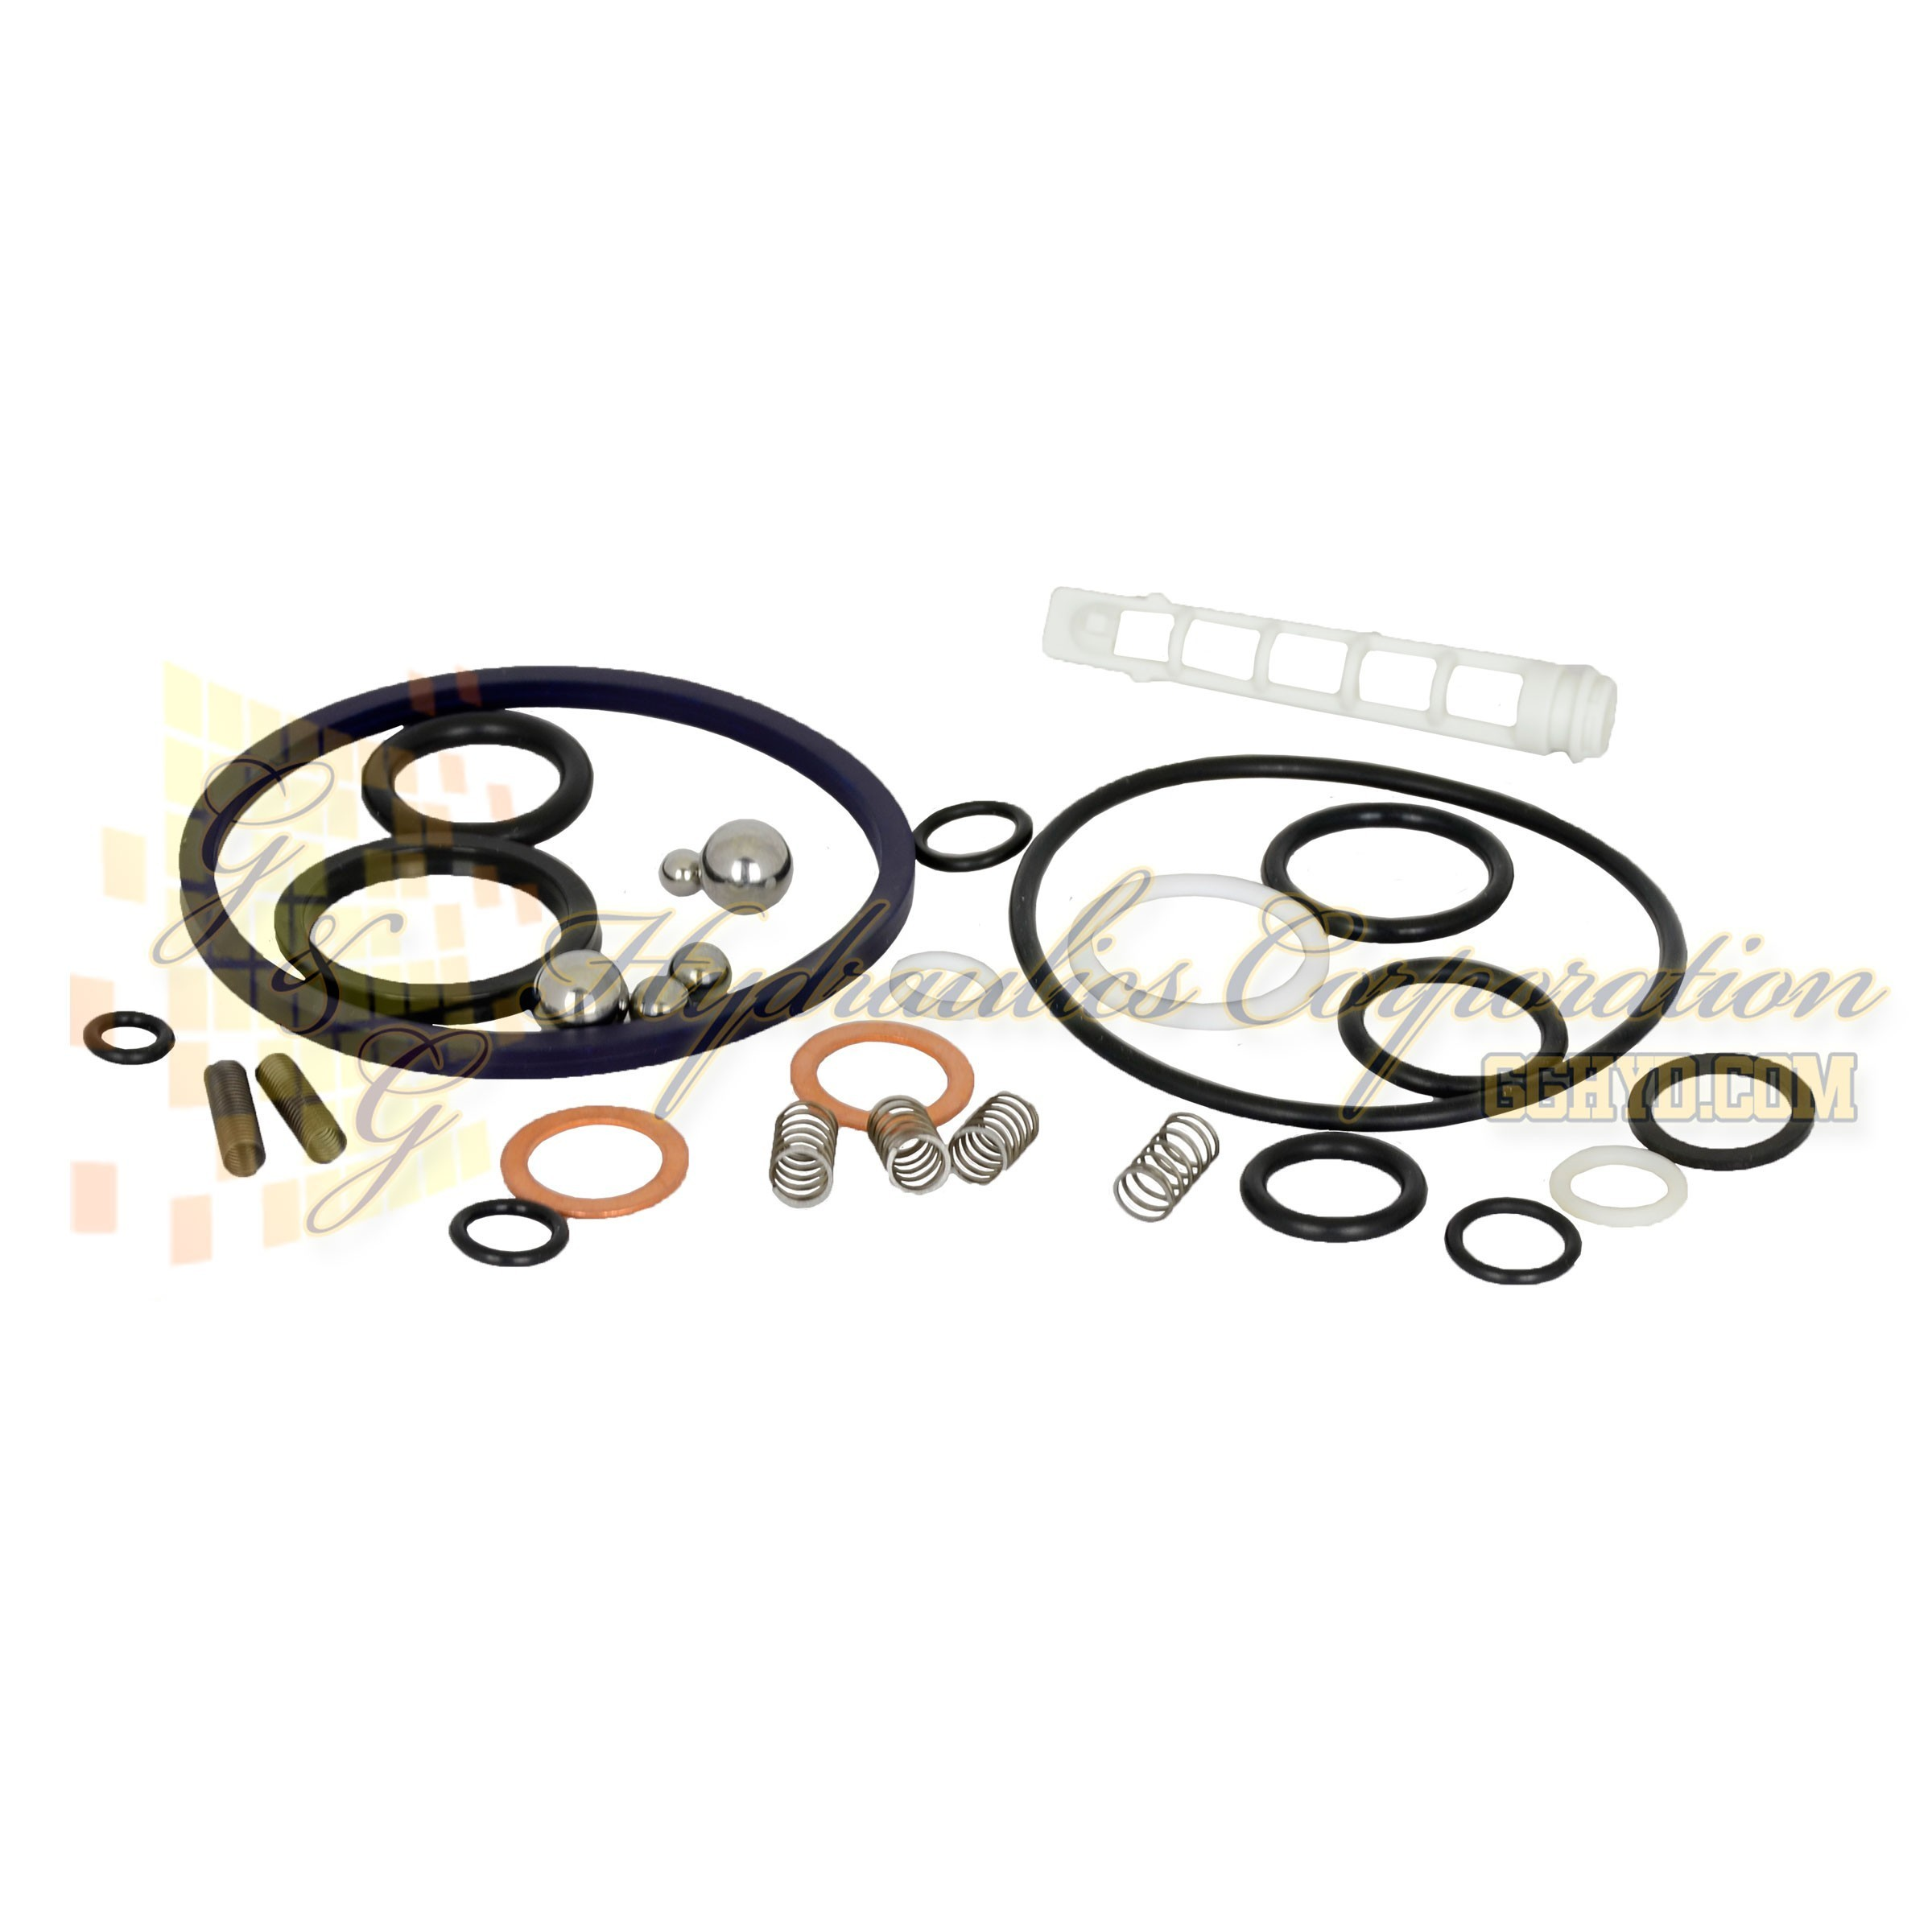 300883 SPX Power Team Seal Kit for Hydraulic PA64 Series Air Pump, Single or Double-Acting UPC #662536303088